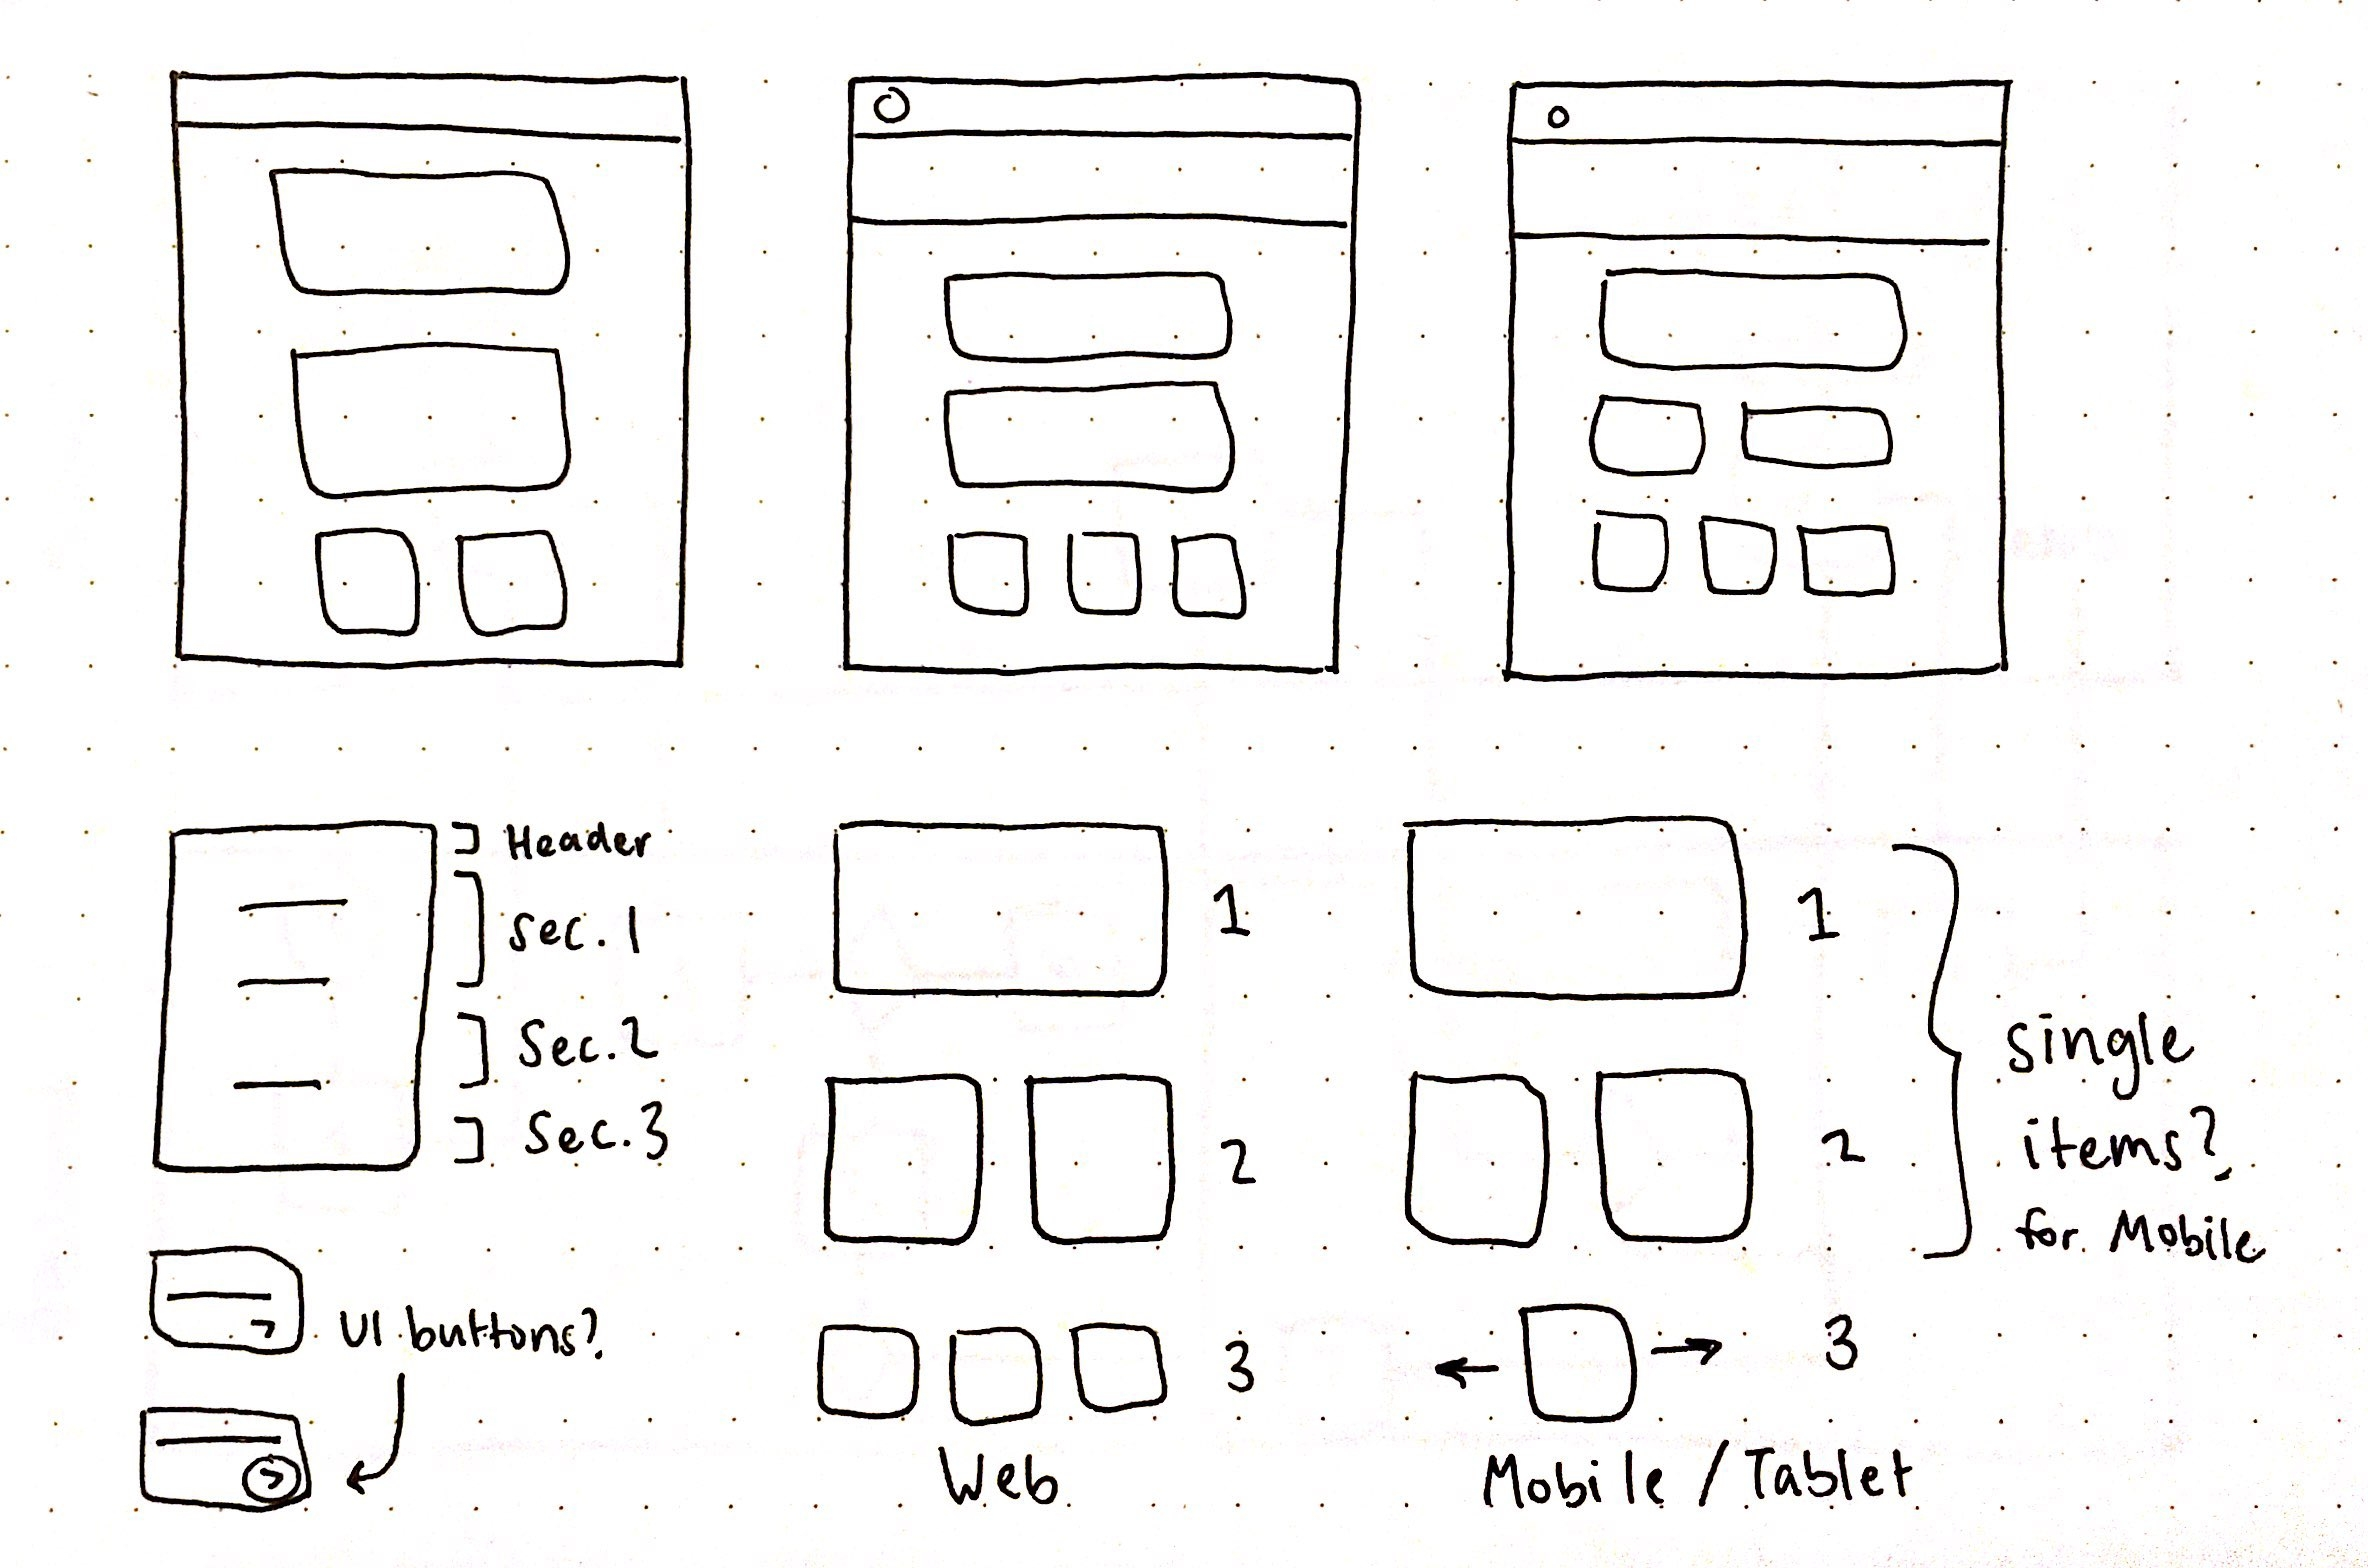 One of the sketches to figure out visual hierarchy for mobile and tablet screens